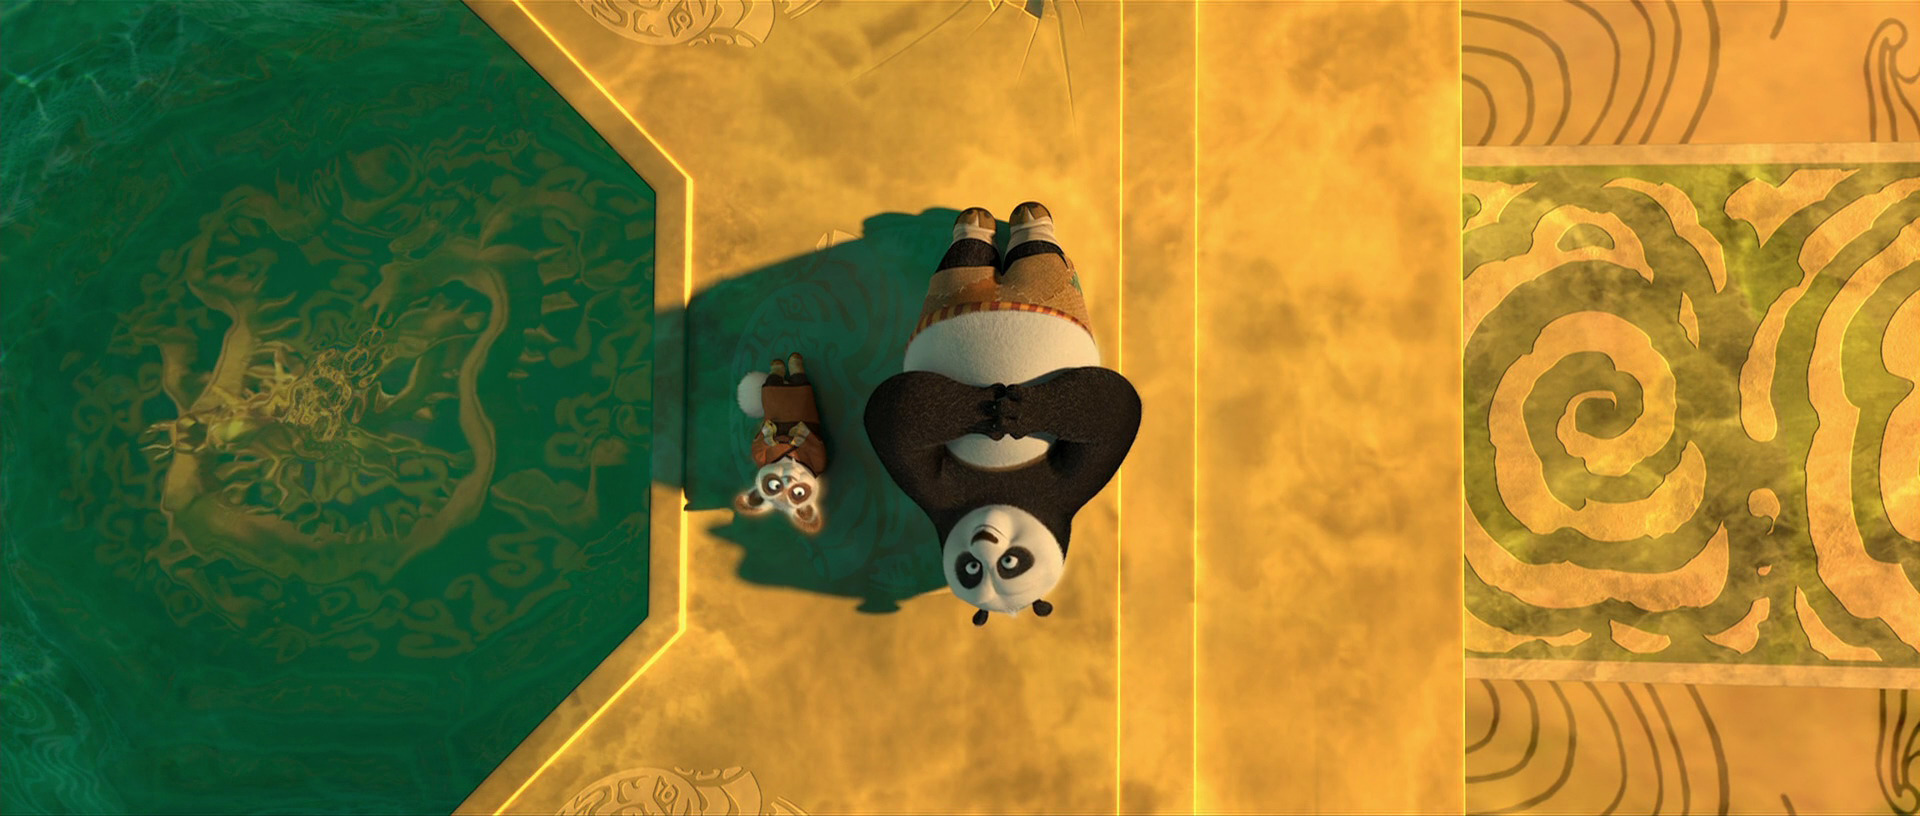 Po and shifu at peace - Kung fu panda shifu ...